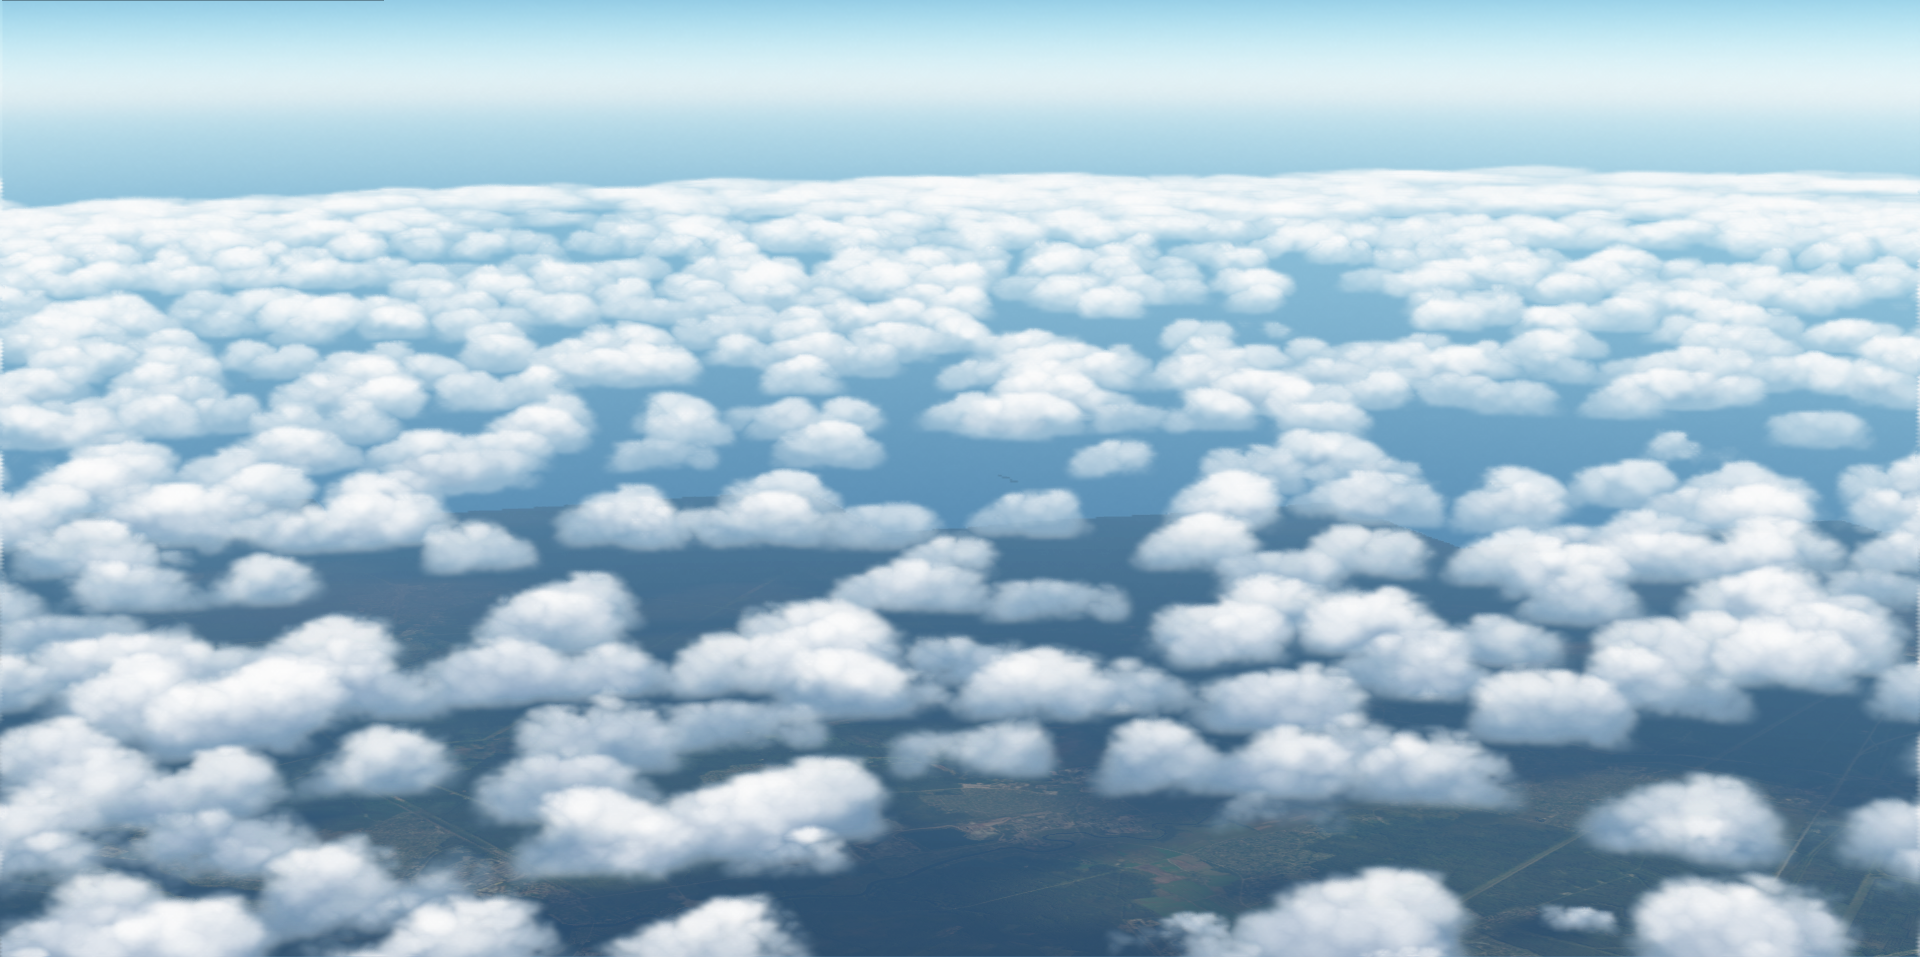 b738 - 2019-09-01 15.37.59.png